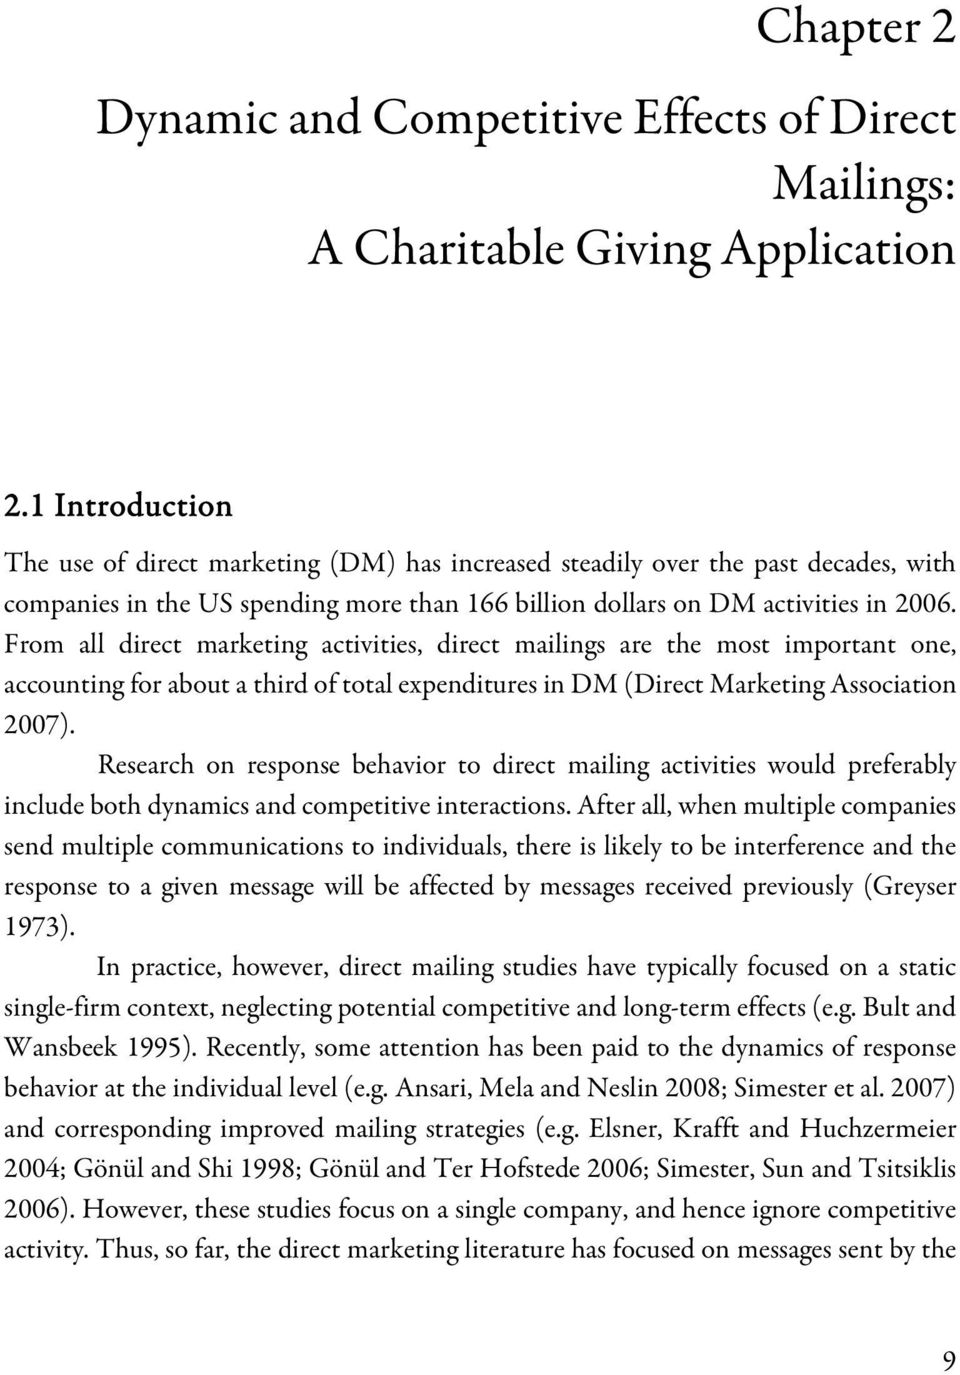 From all direct marketing activities, direct mailings are the most important one, accounting for about a third of total expenditures in DM (Direct Marketing Association 2007).